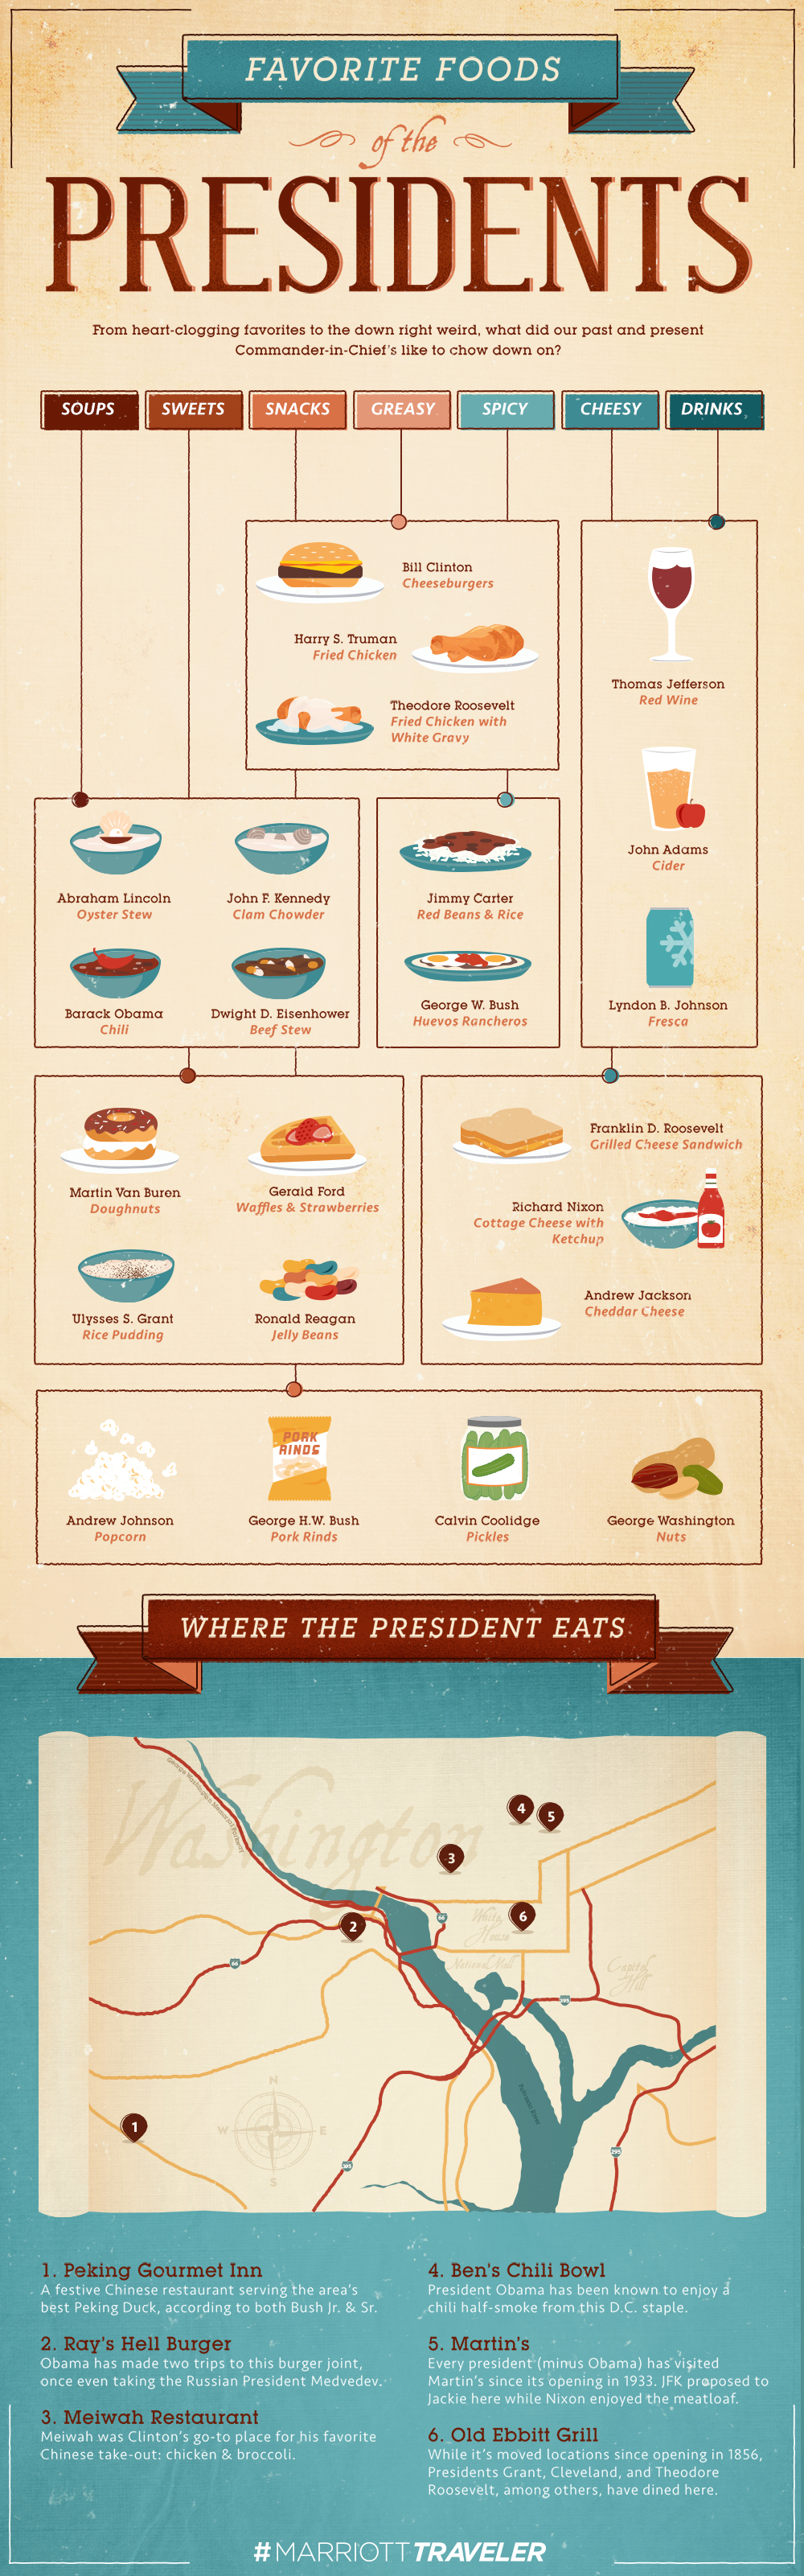 Favorite Foods of the Presidents